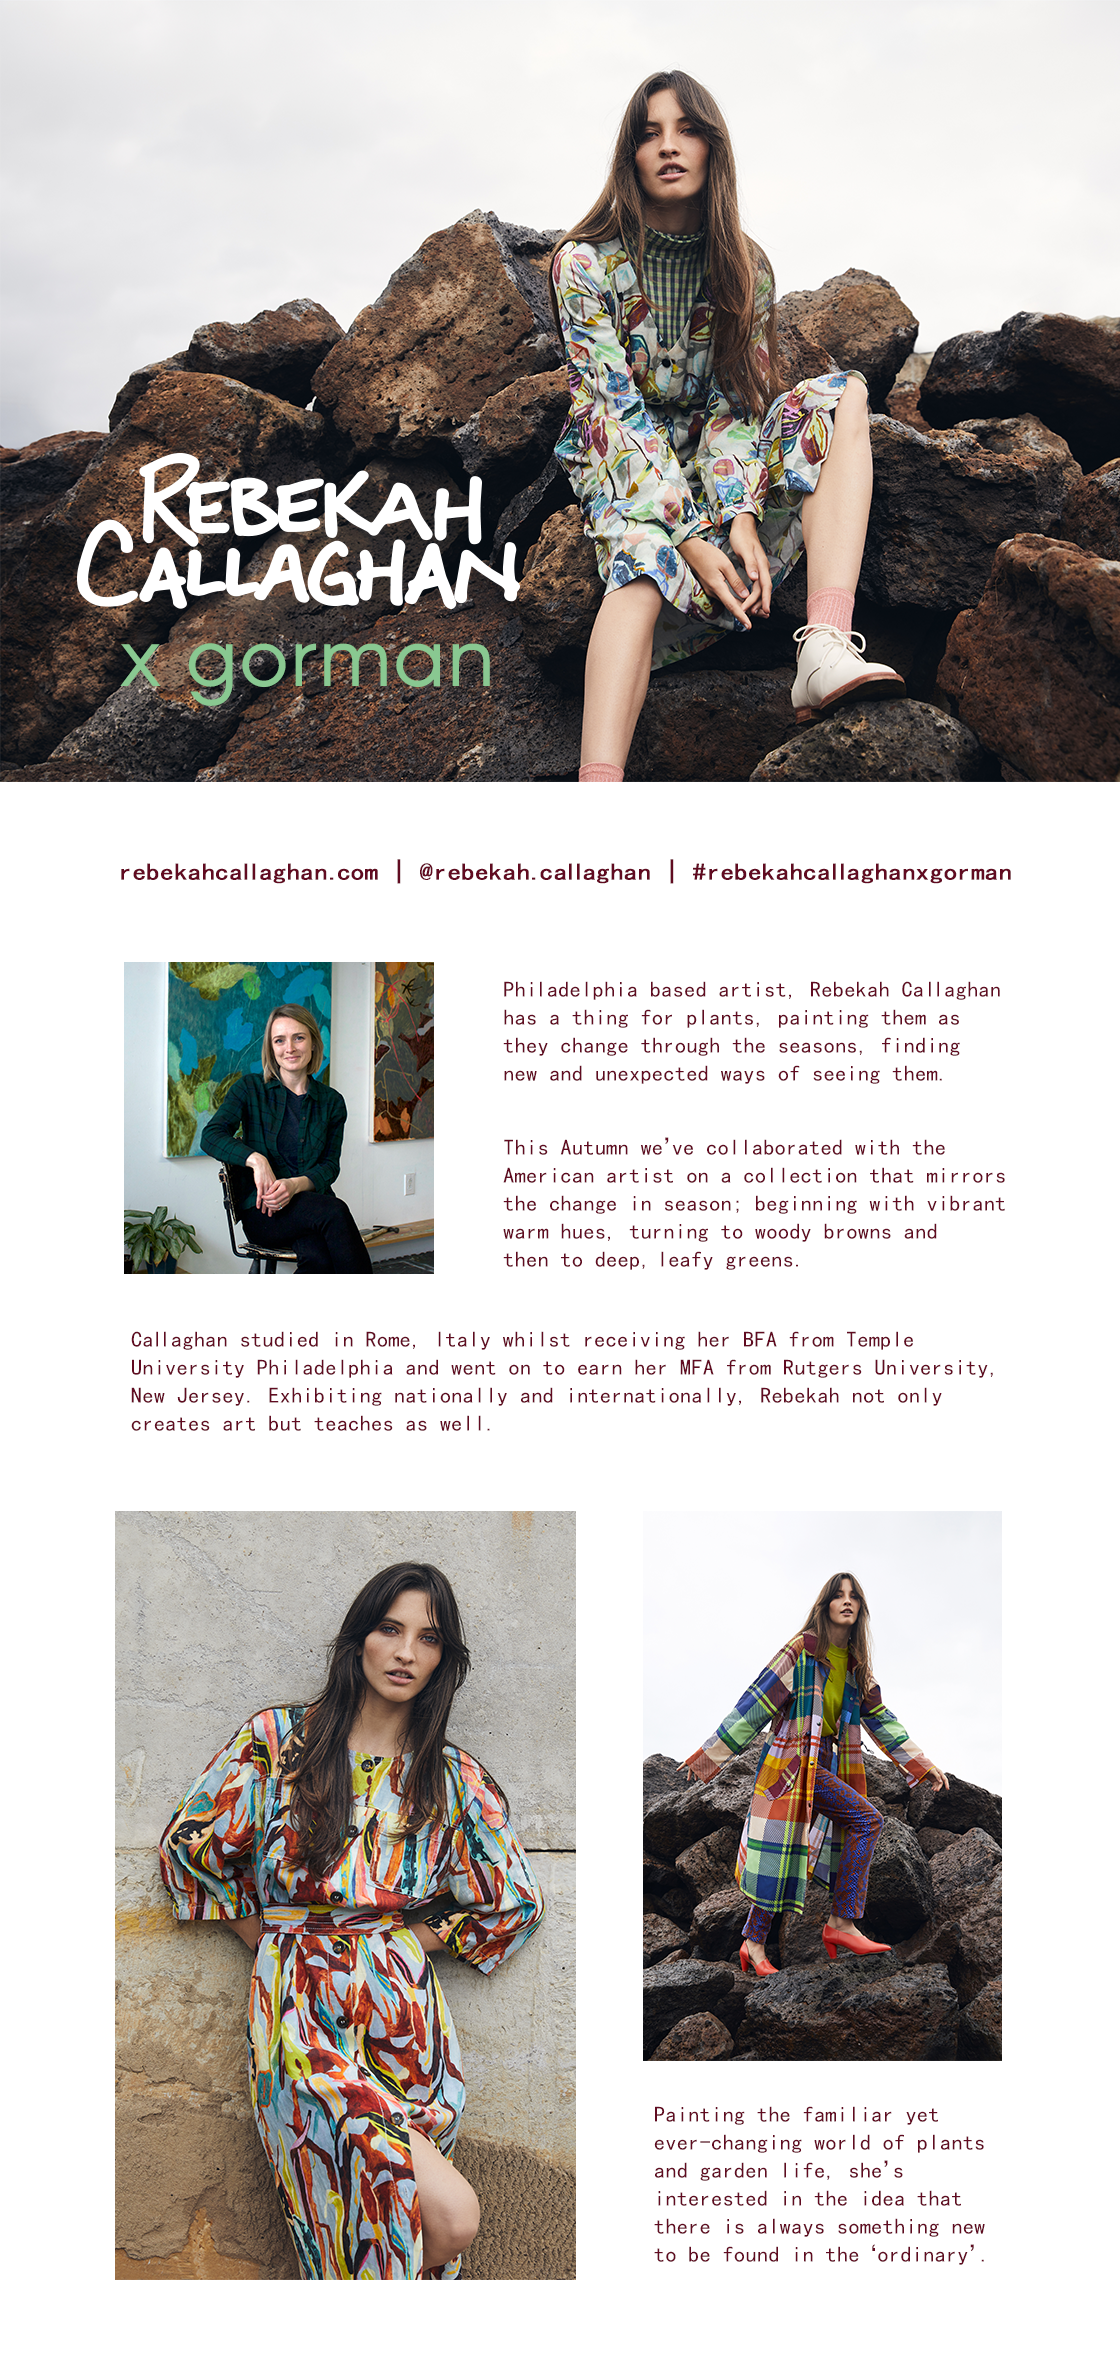 Rebekah Callaghan x Gorman